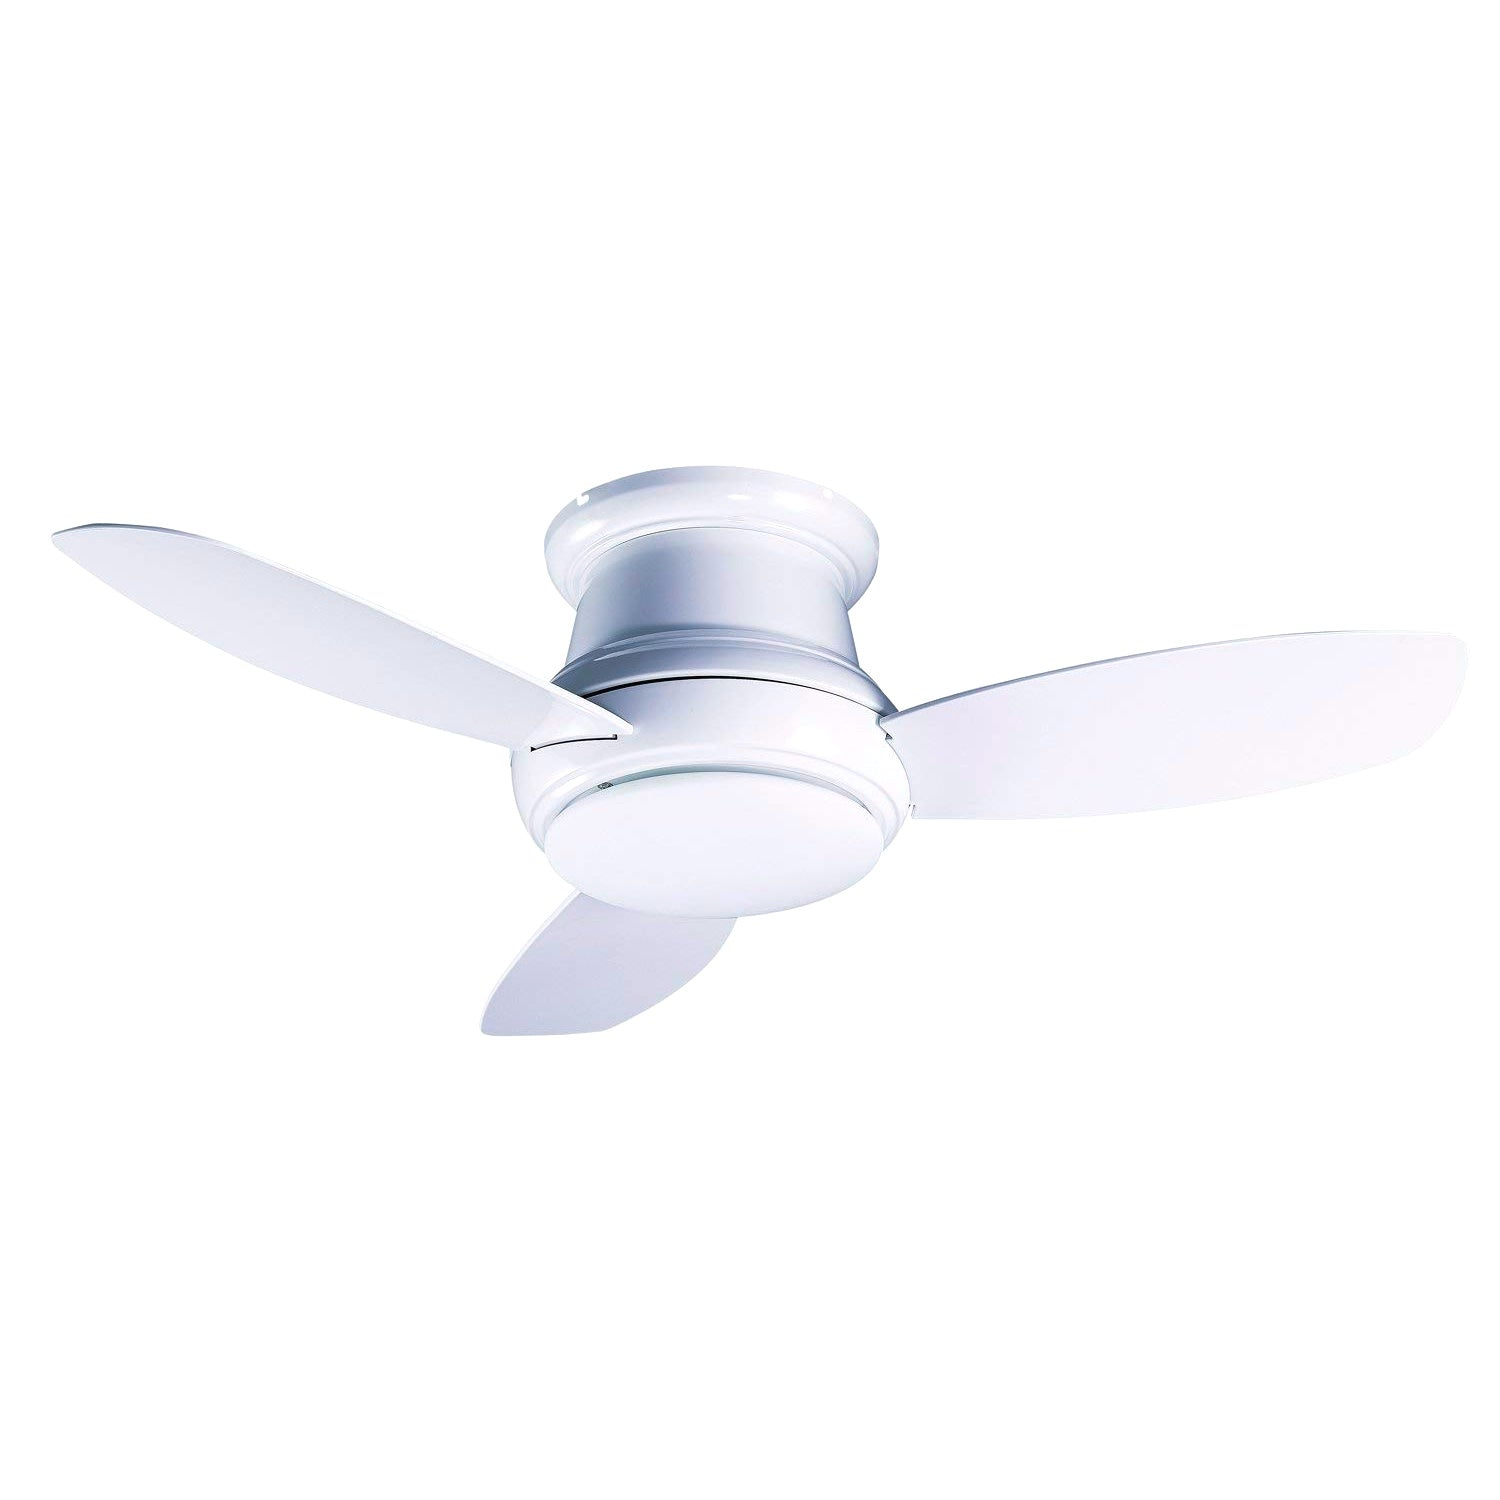 Cloudybay Ceiling Fan with LED Light 3000k 44-inch 60W White with Remote Control__title